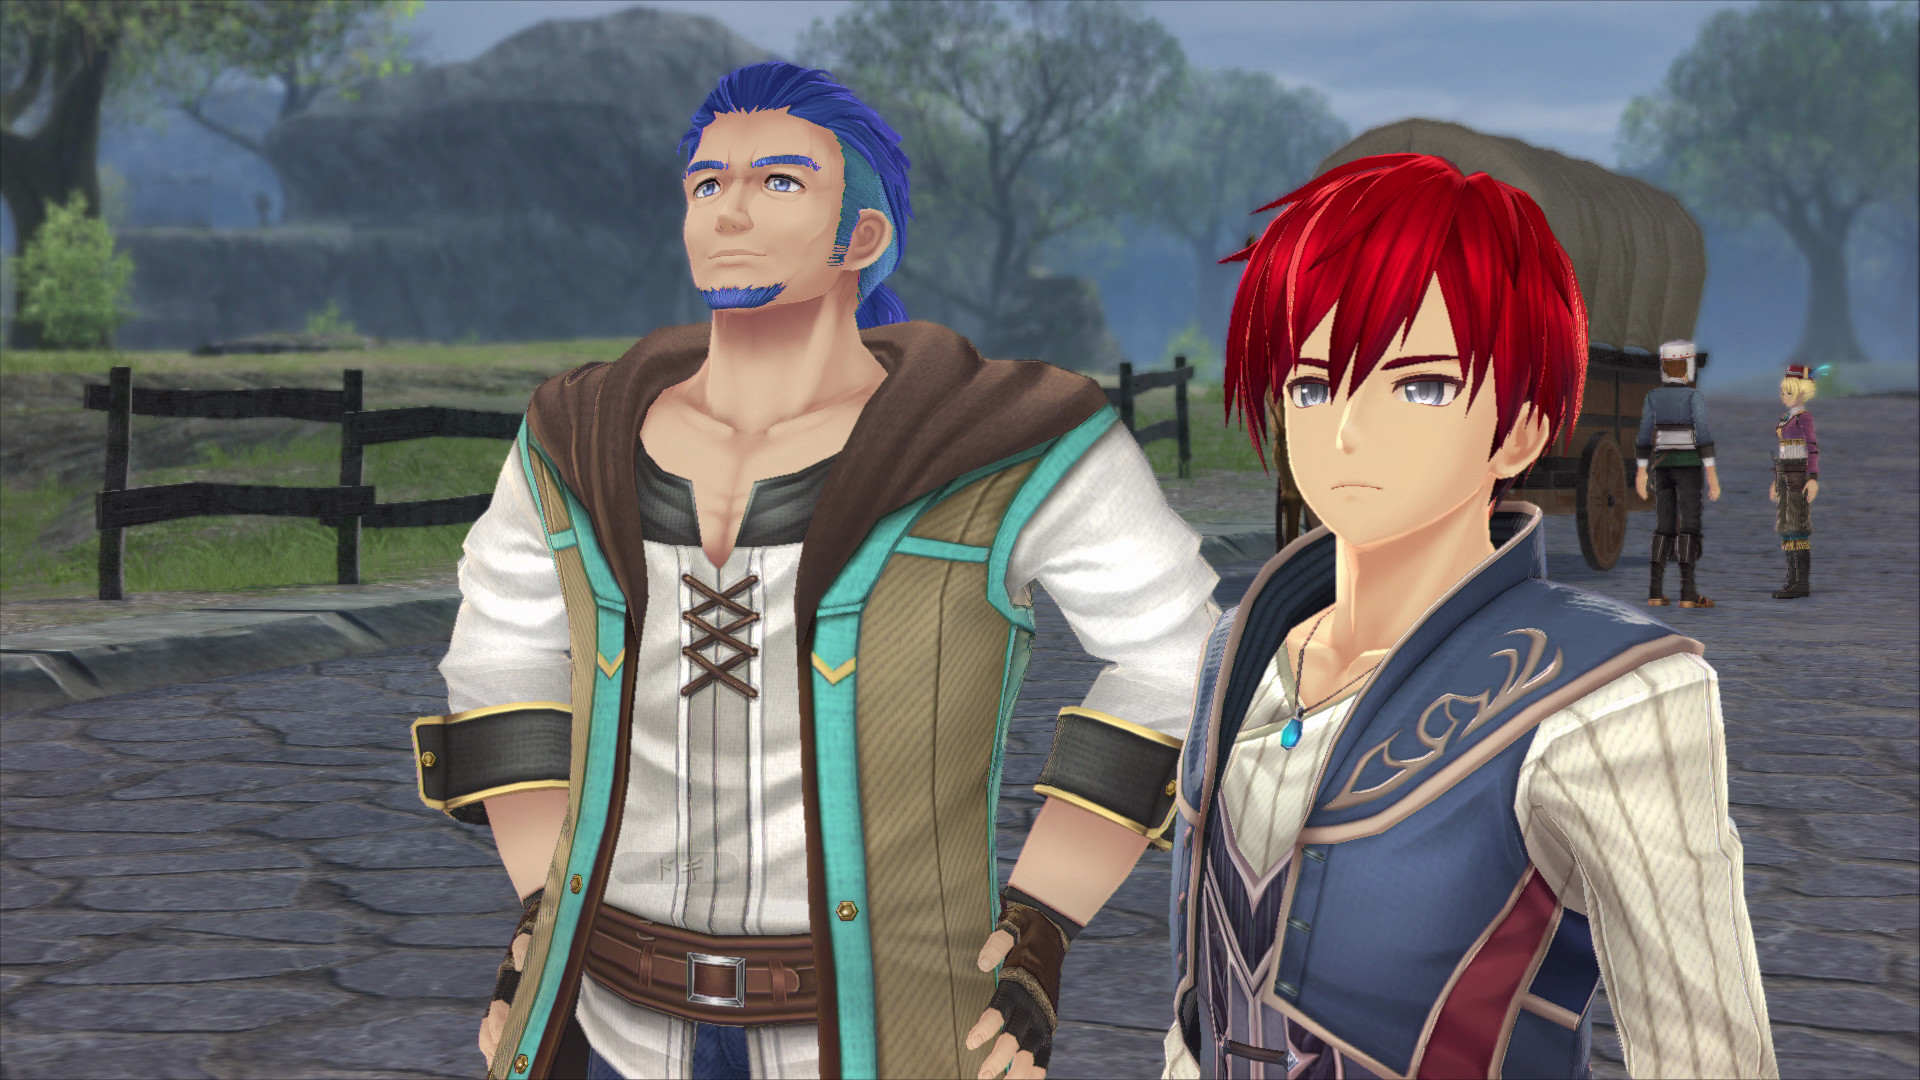 Ys IX Patch 1.0.6 for PC released